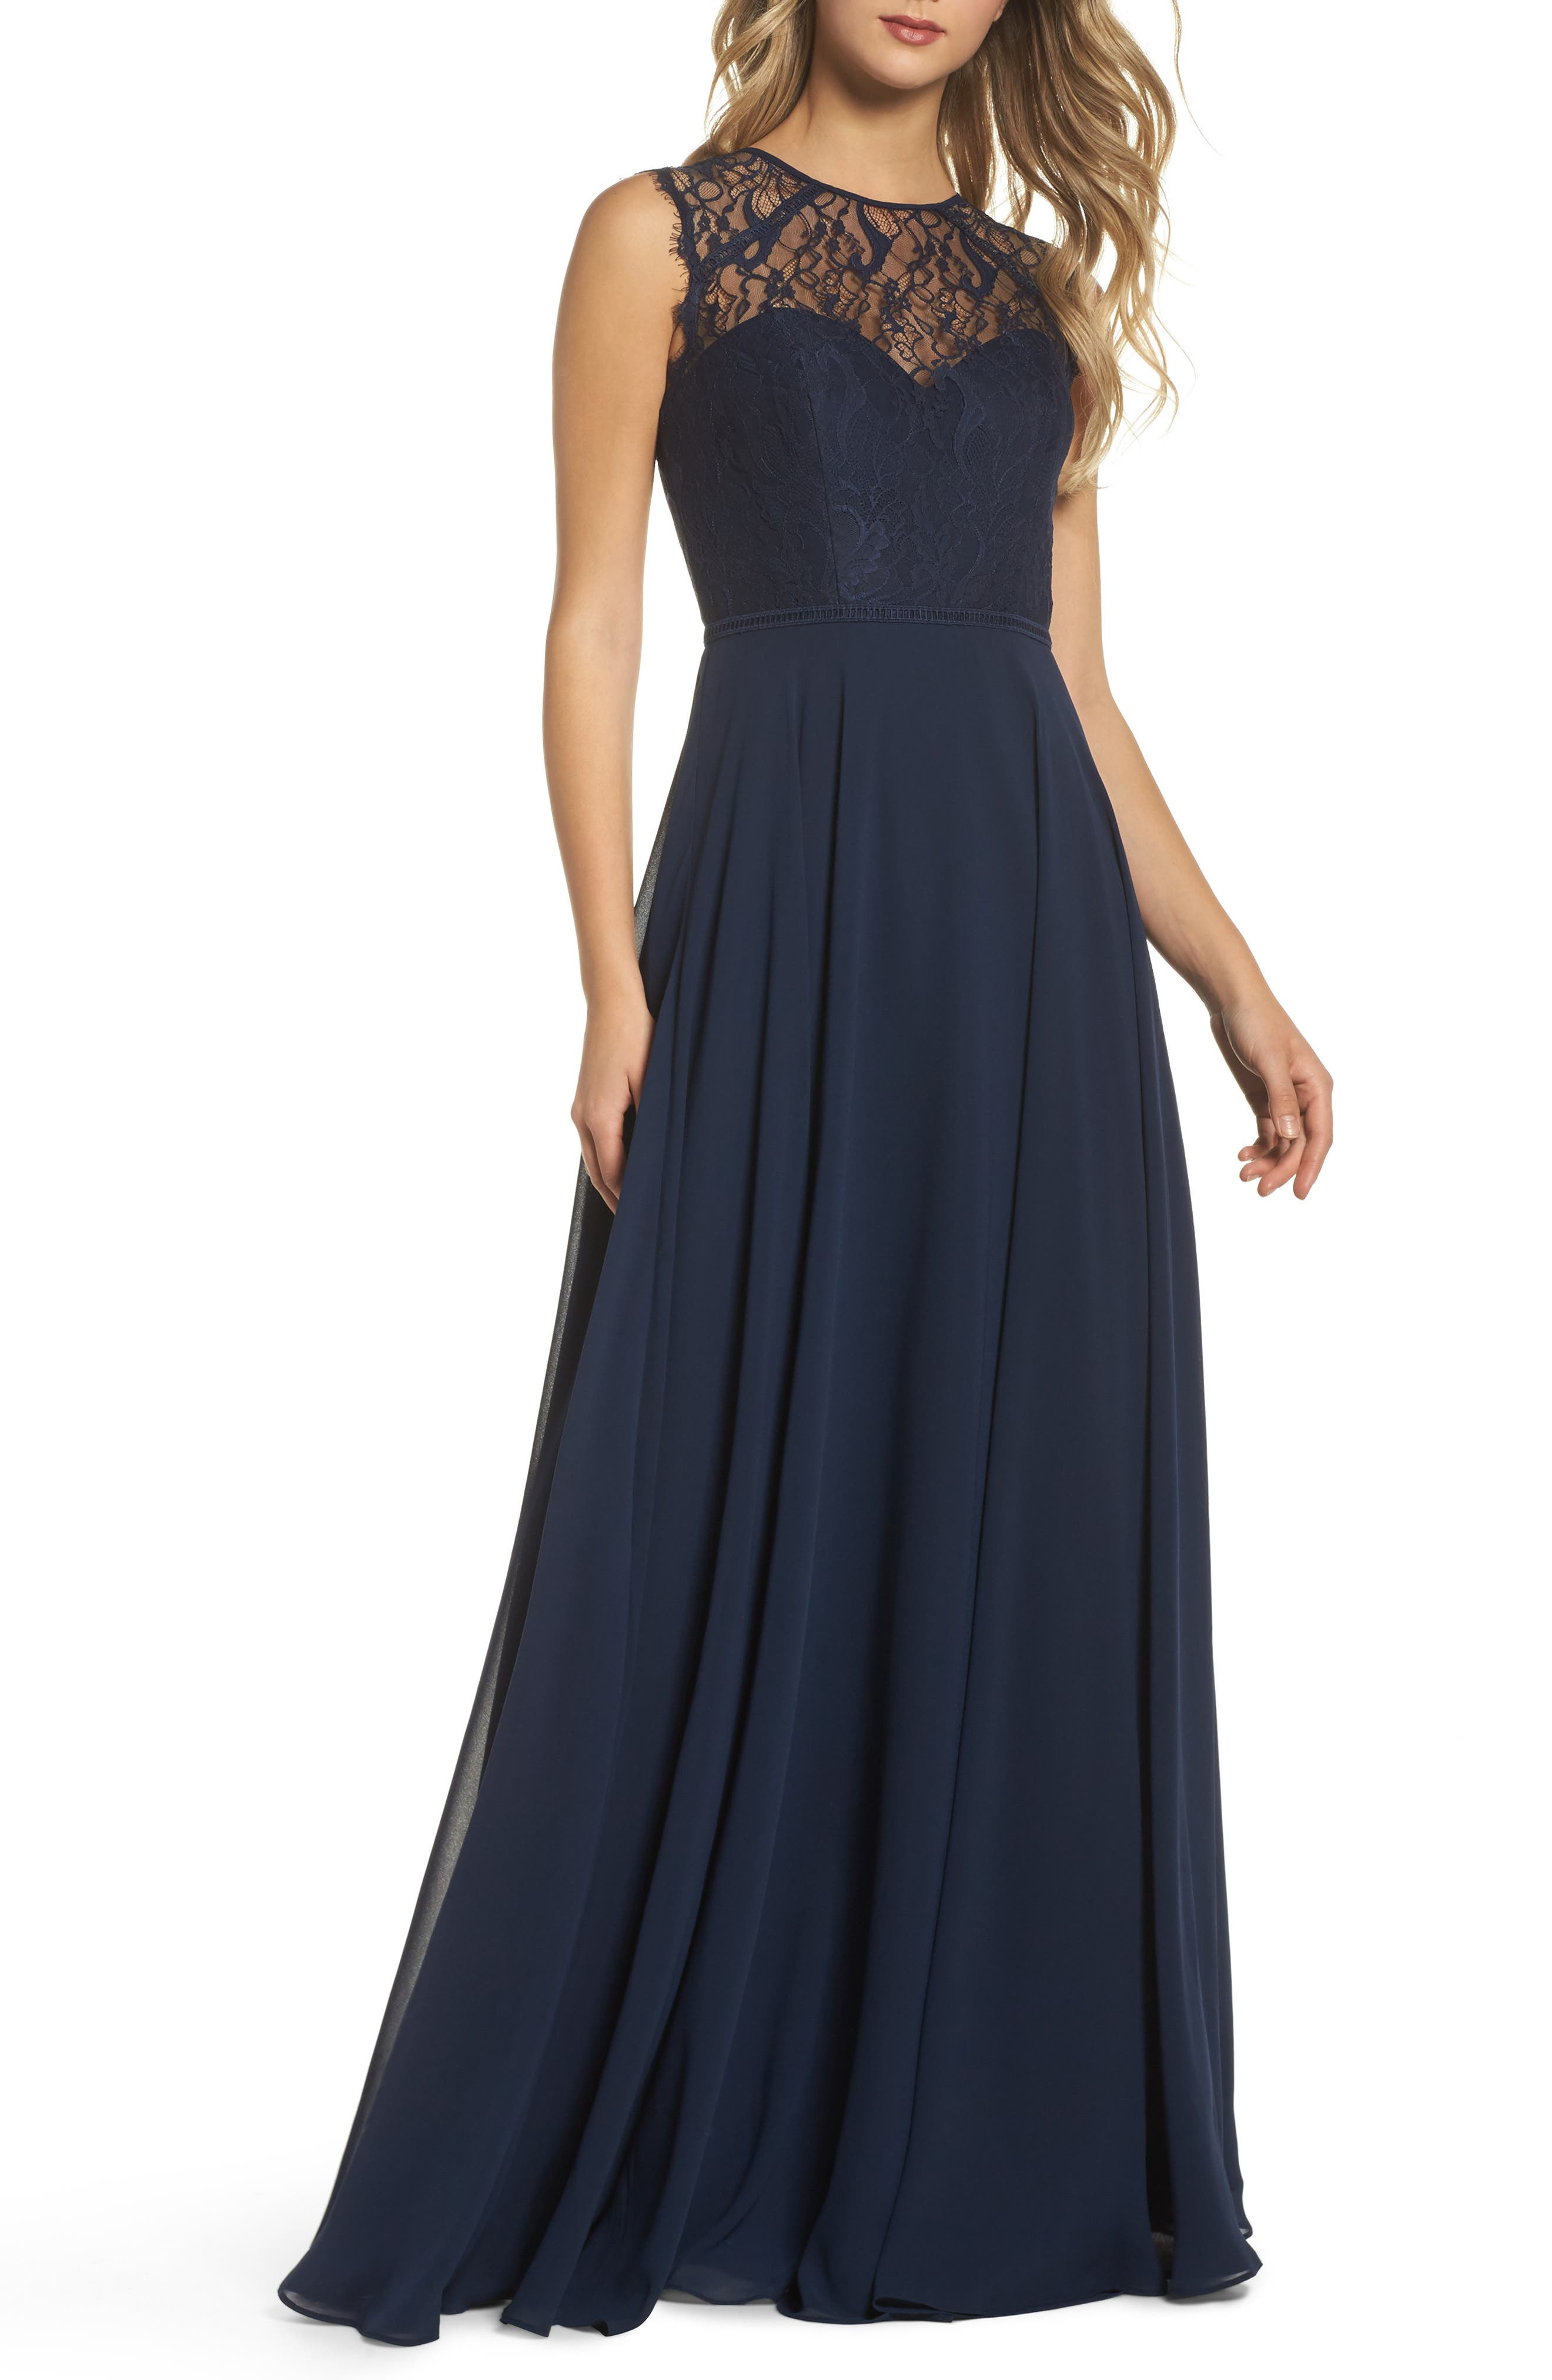 HAYLEY PAIGE OCCASIONS, Lace & Chiffon Gown, Main thumbnail 1, color, NAVY